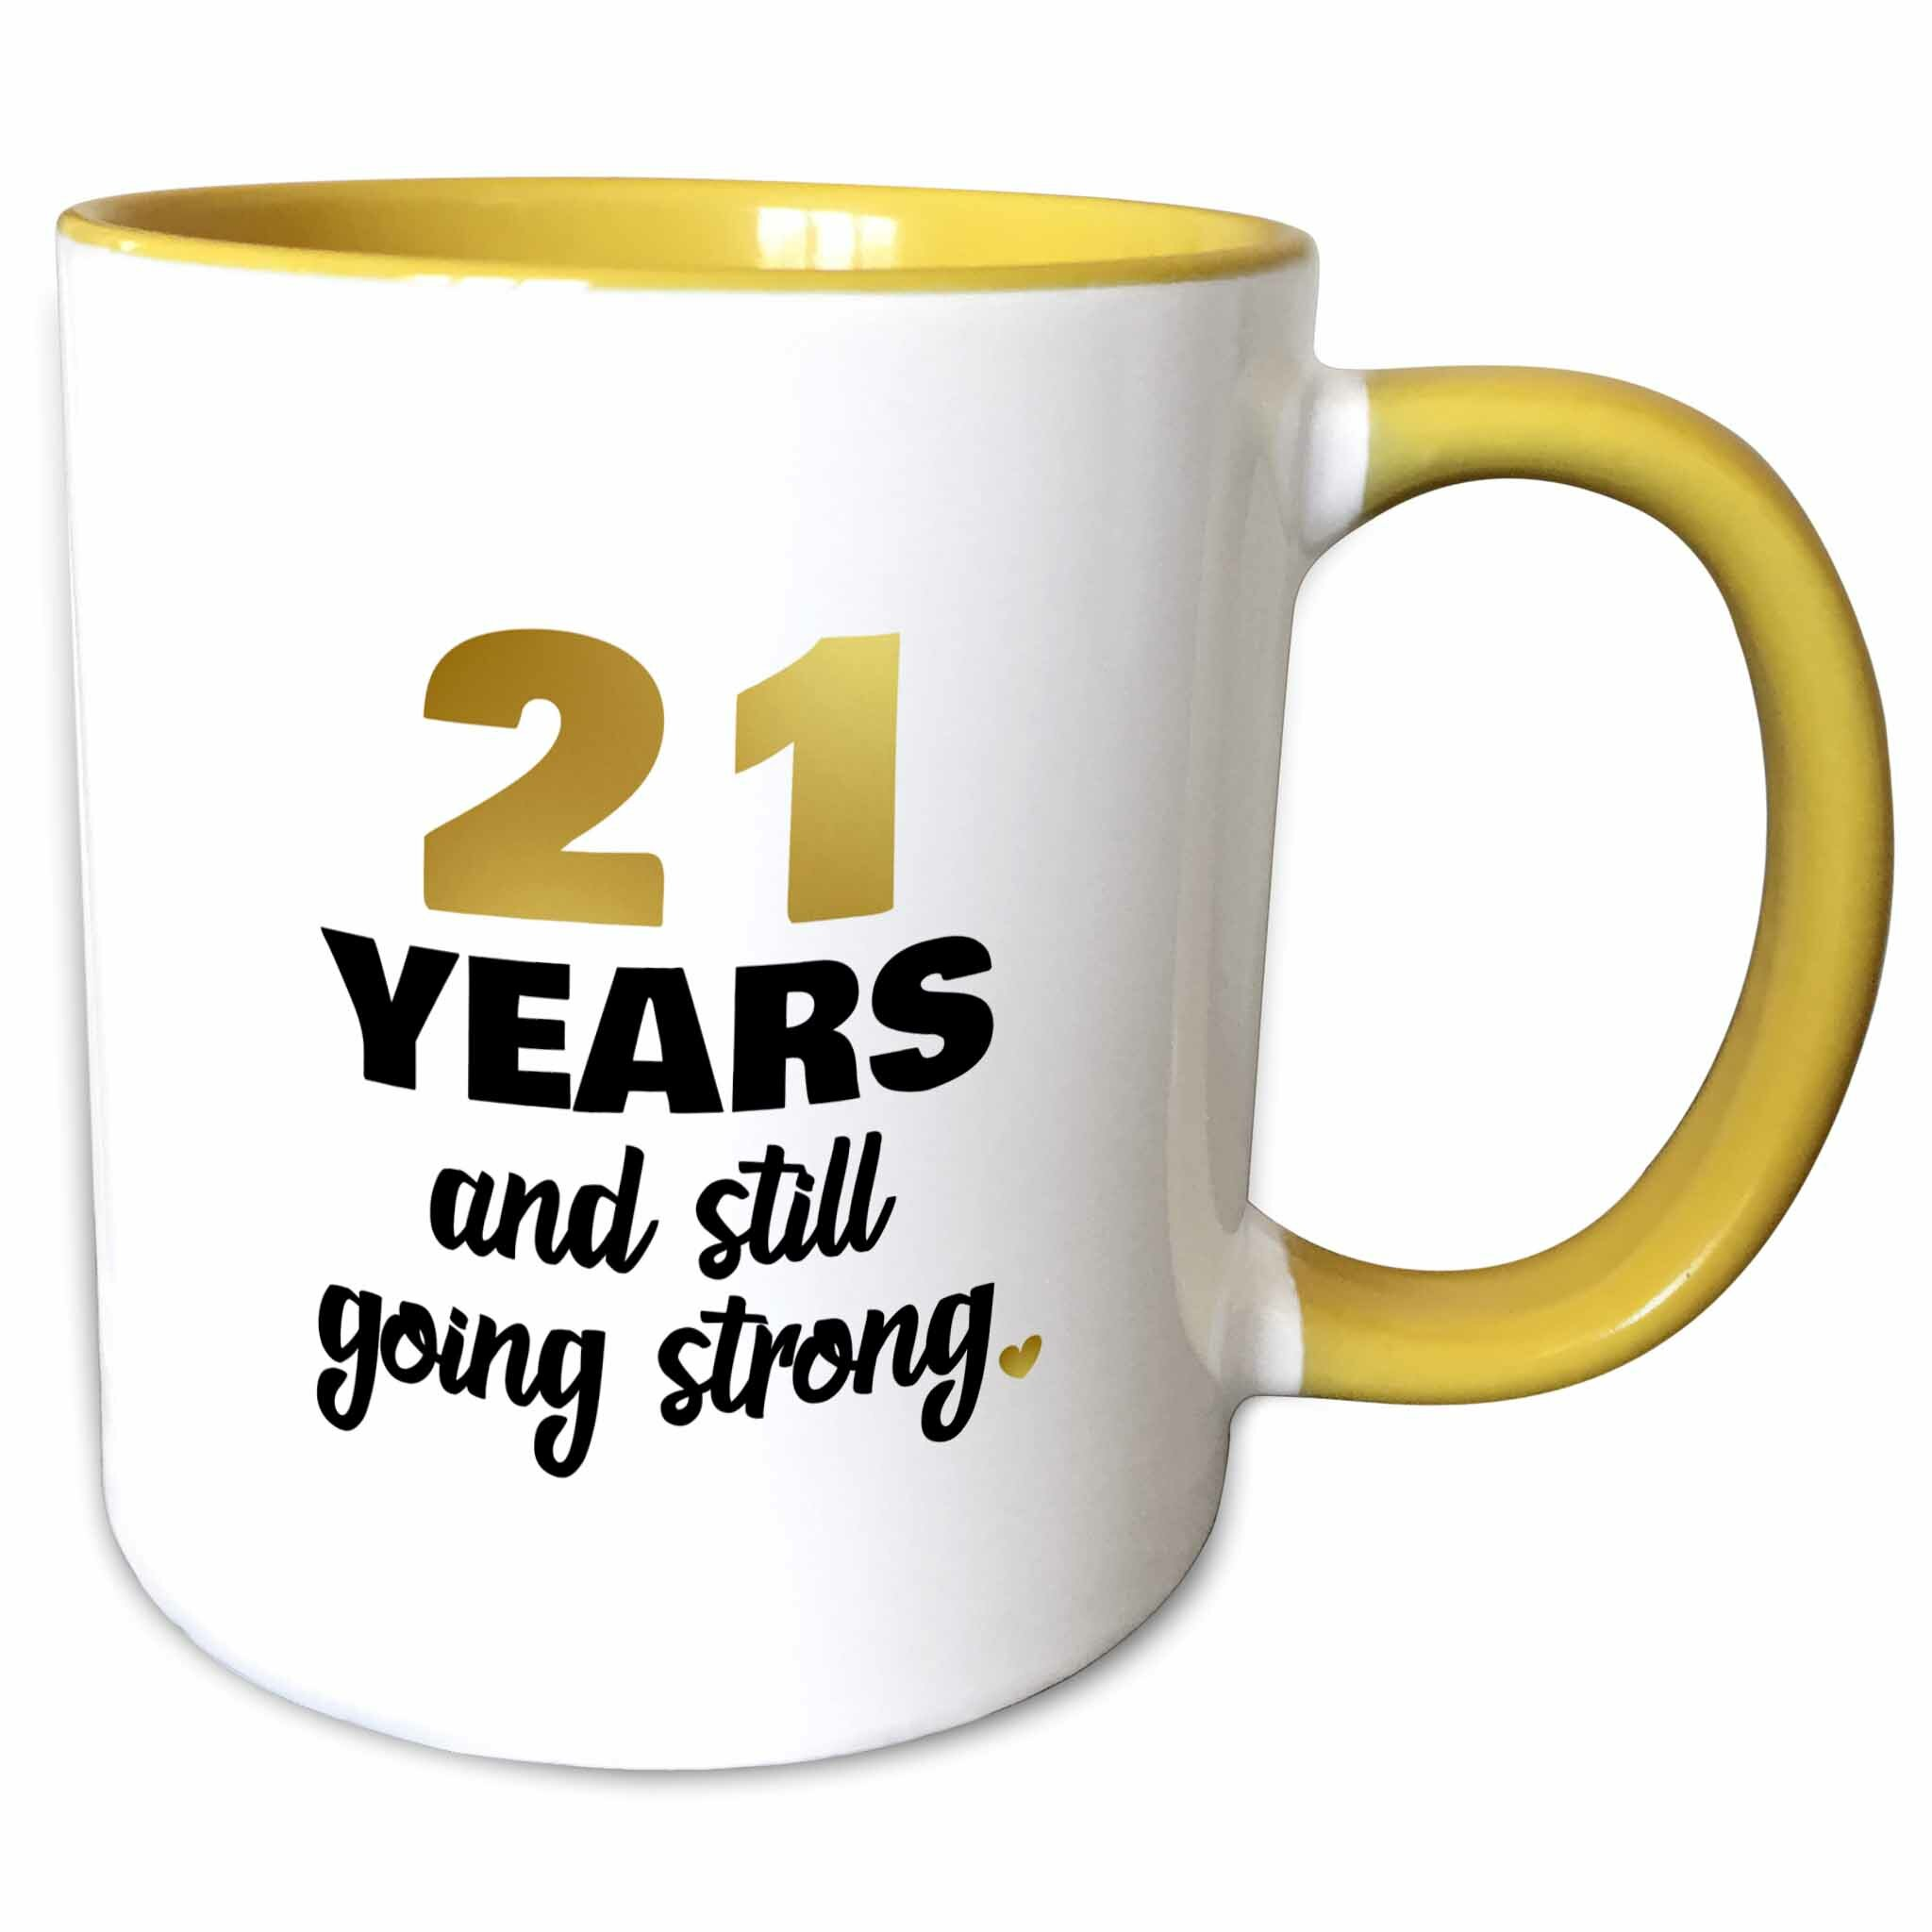 21 Wedding Anniversary Gift: The Party Aisle 21 Years Still Going Strong 21st Wedding